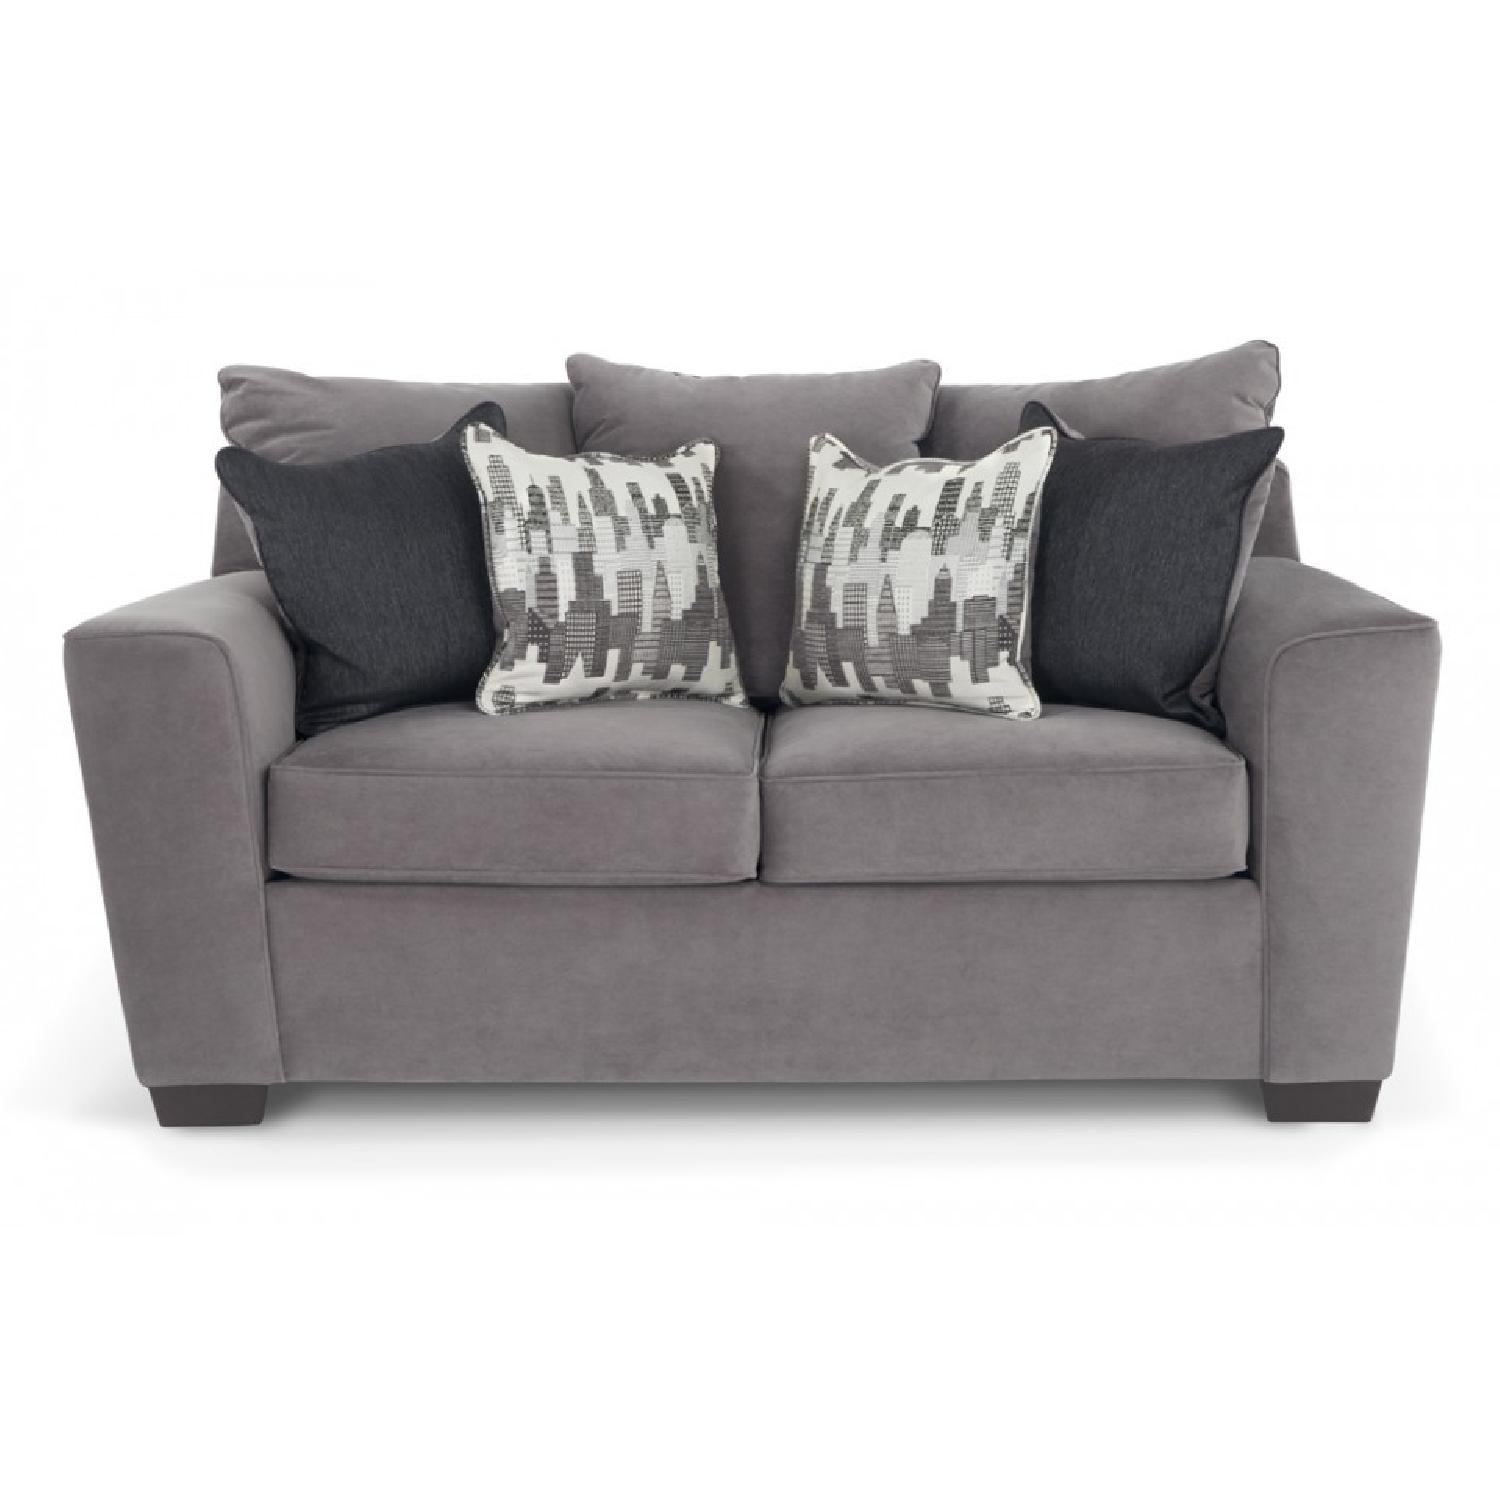 sofa decor stunning living room of lovable bed furniture bobs with brown leather lawrence loveseat